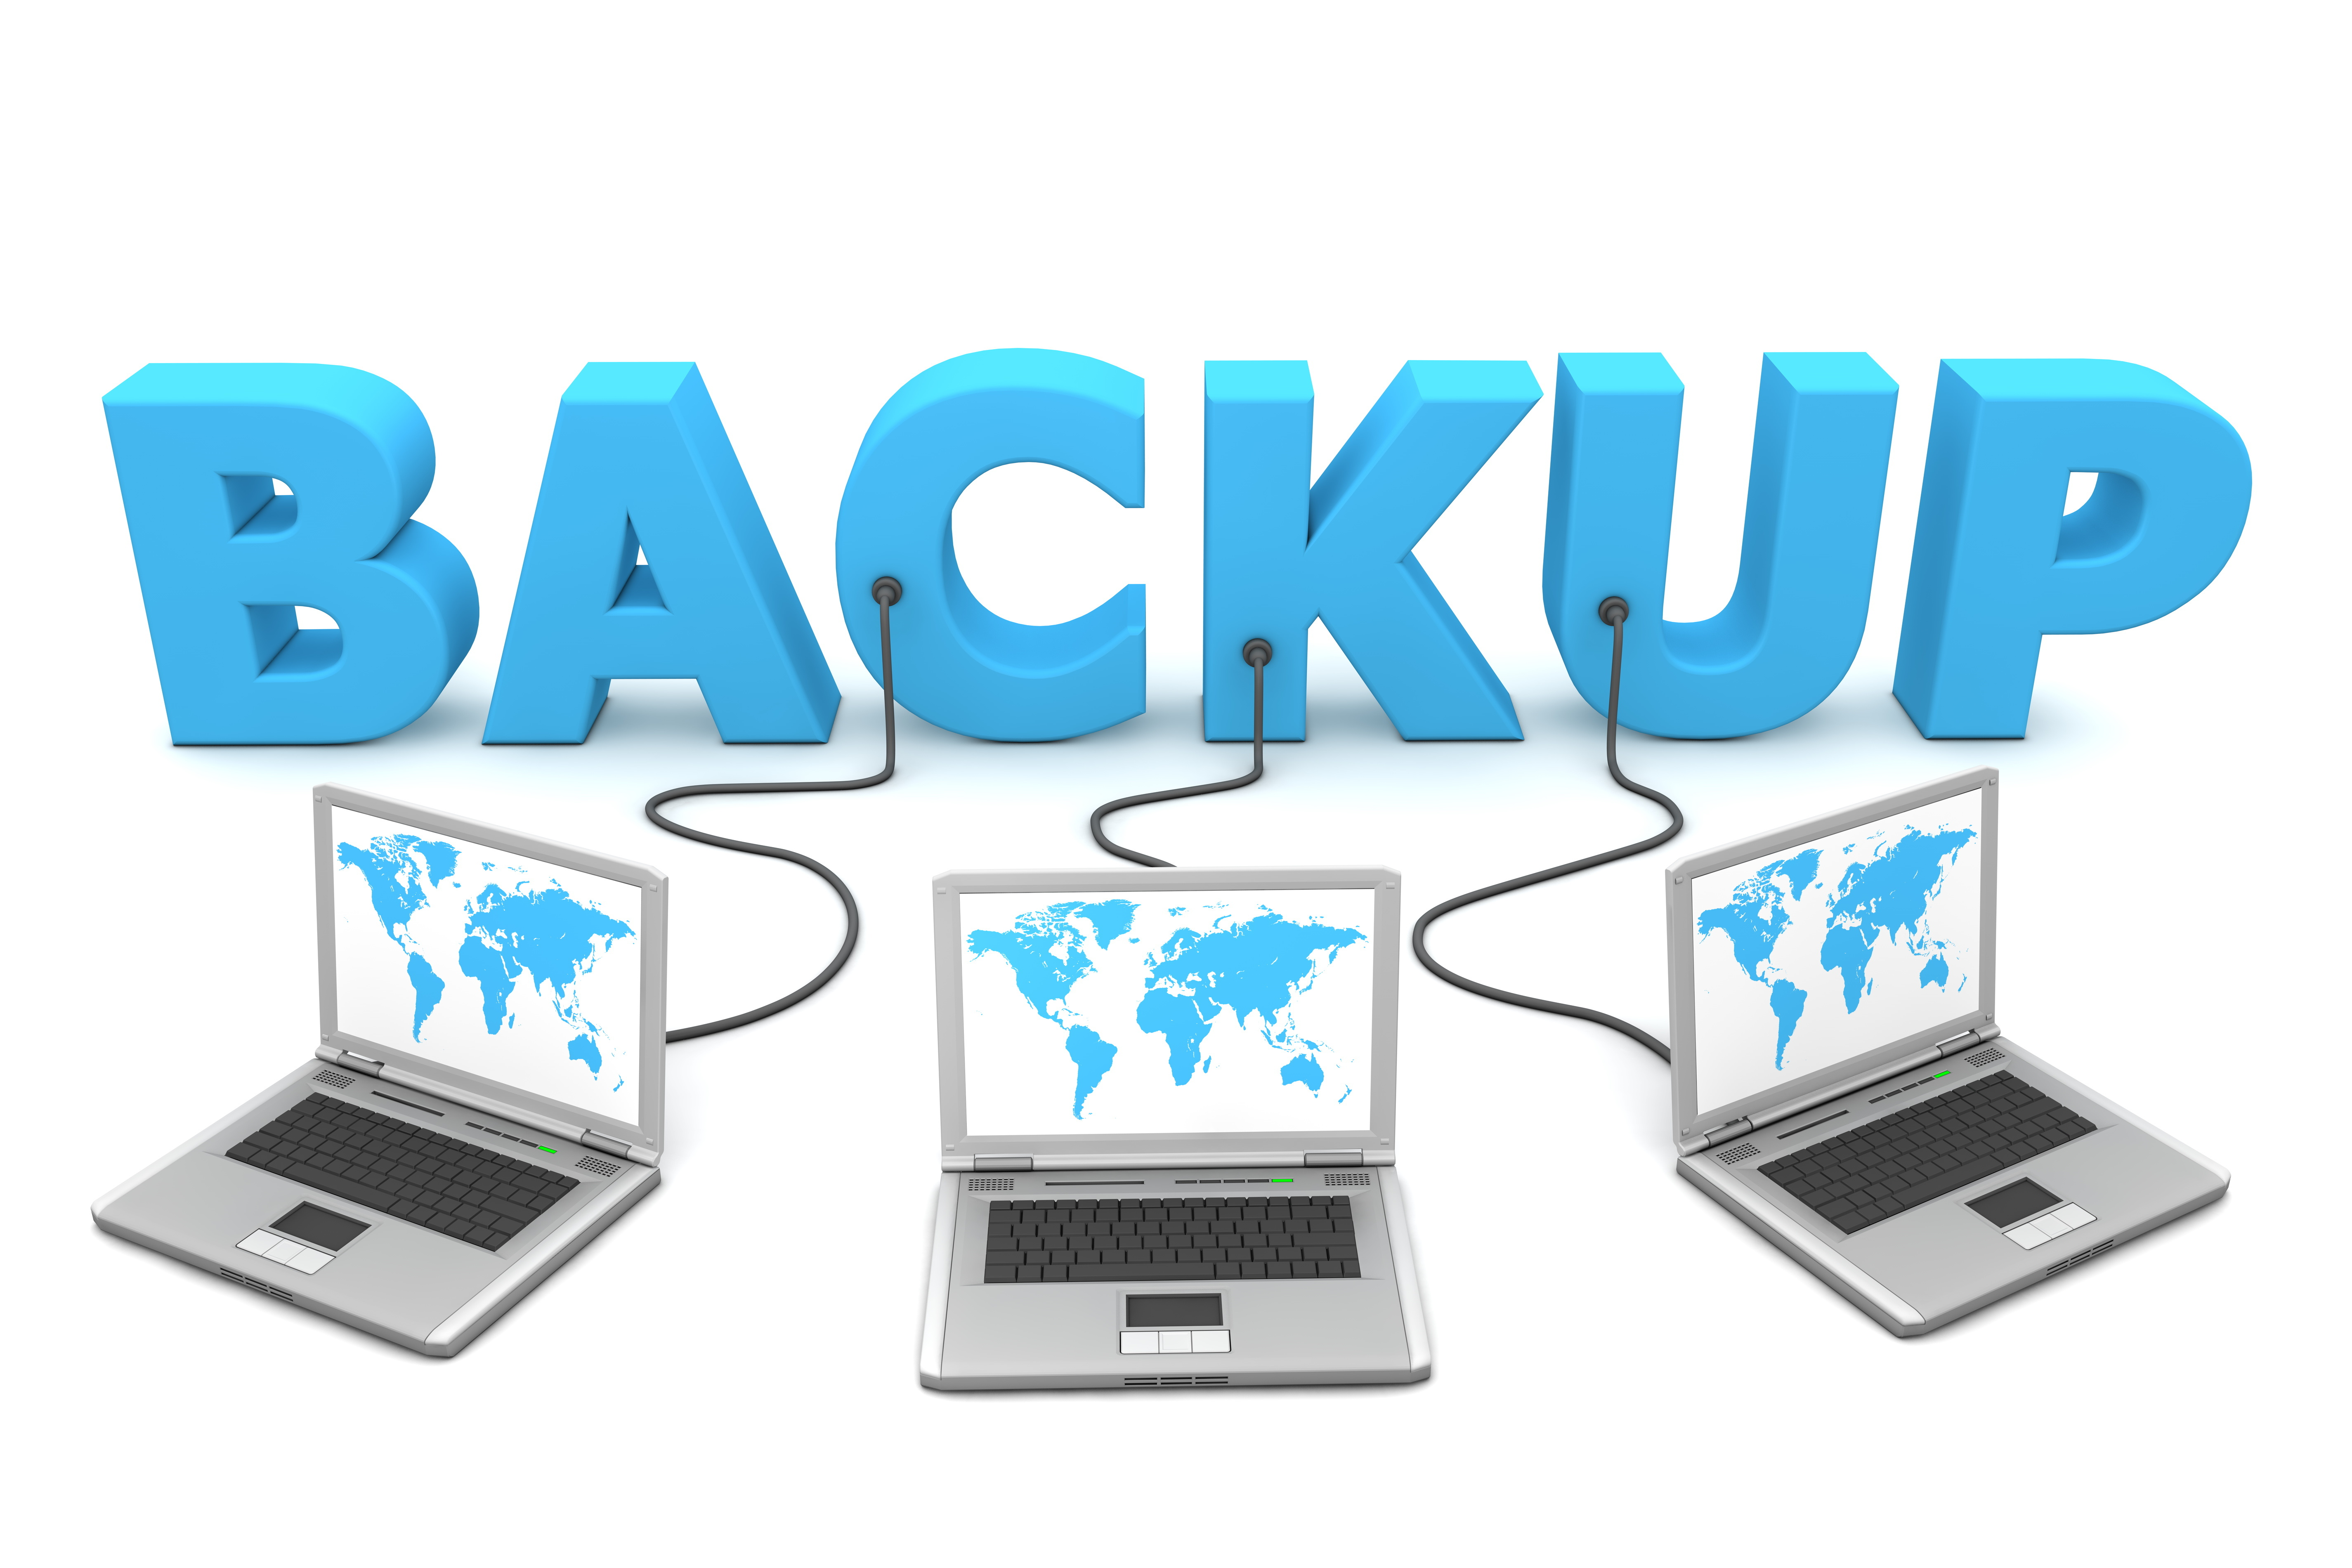 March 31, 2015 - National Backup Day